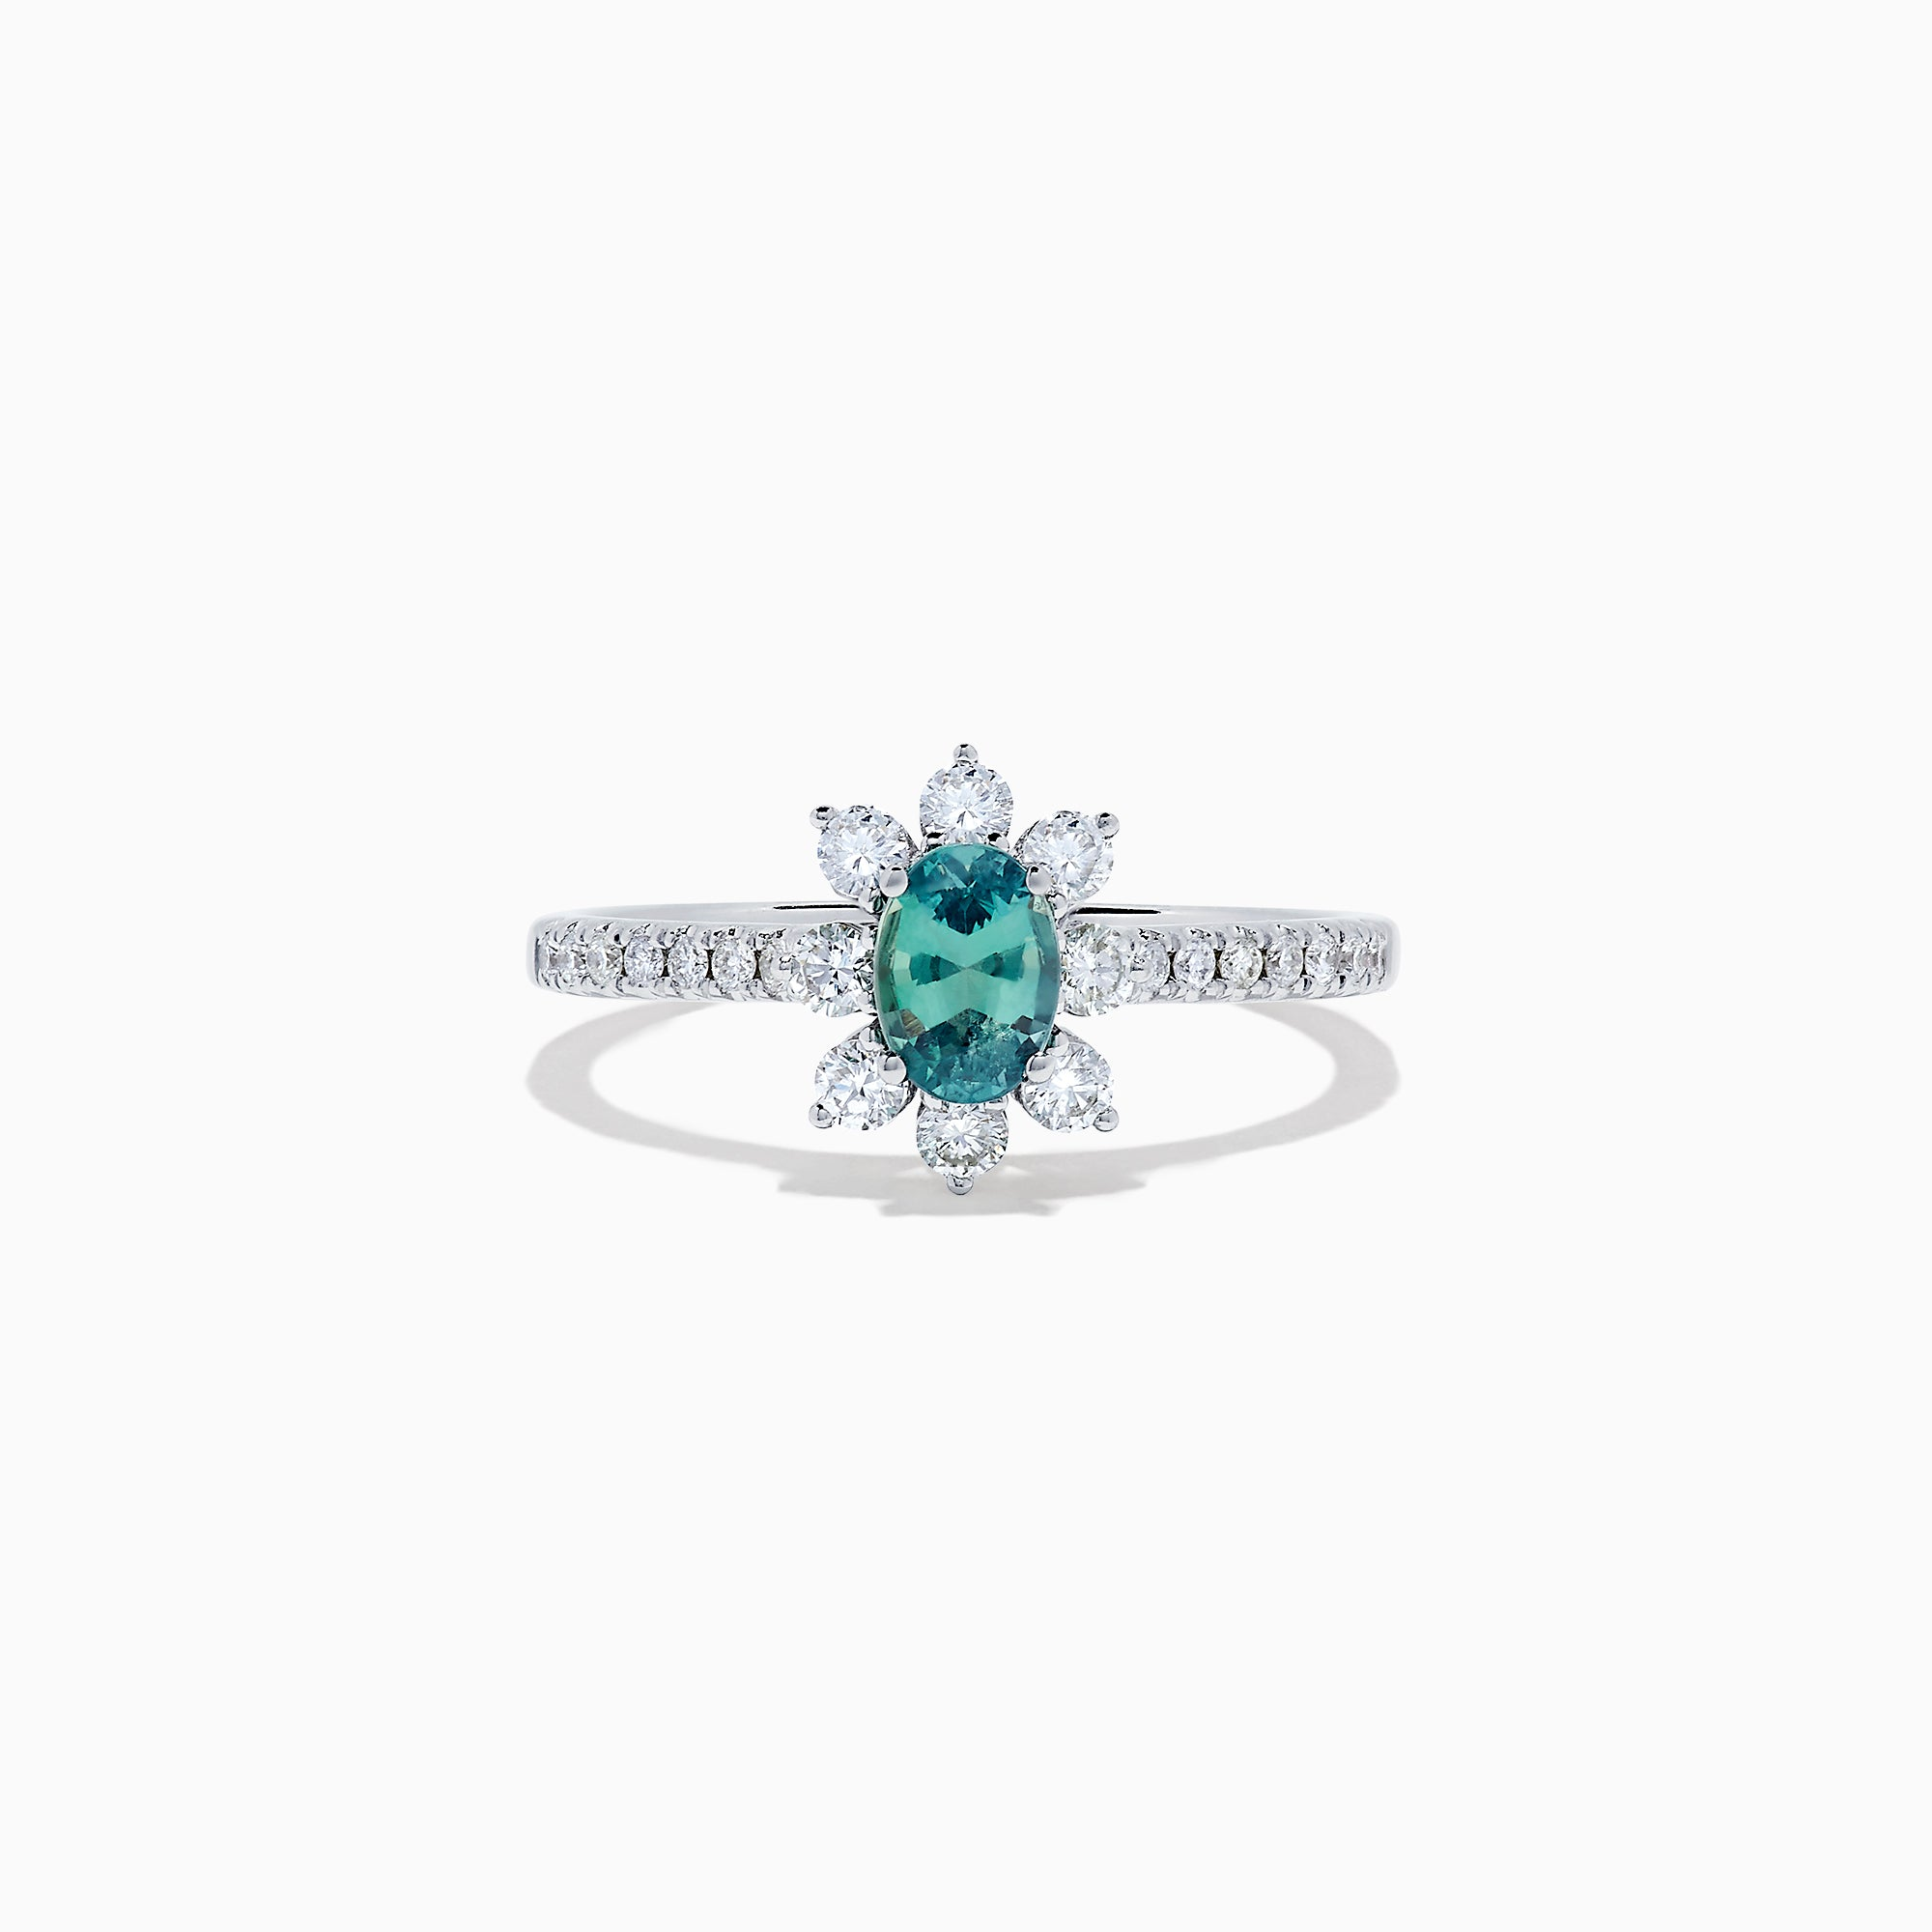 Effy 14K White Gold Alexandrite and Diamond Ring, 0.85 TCW